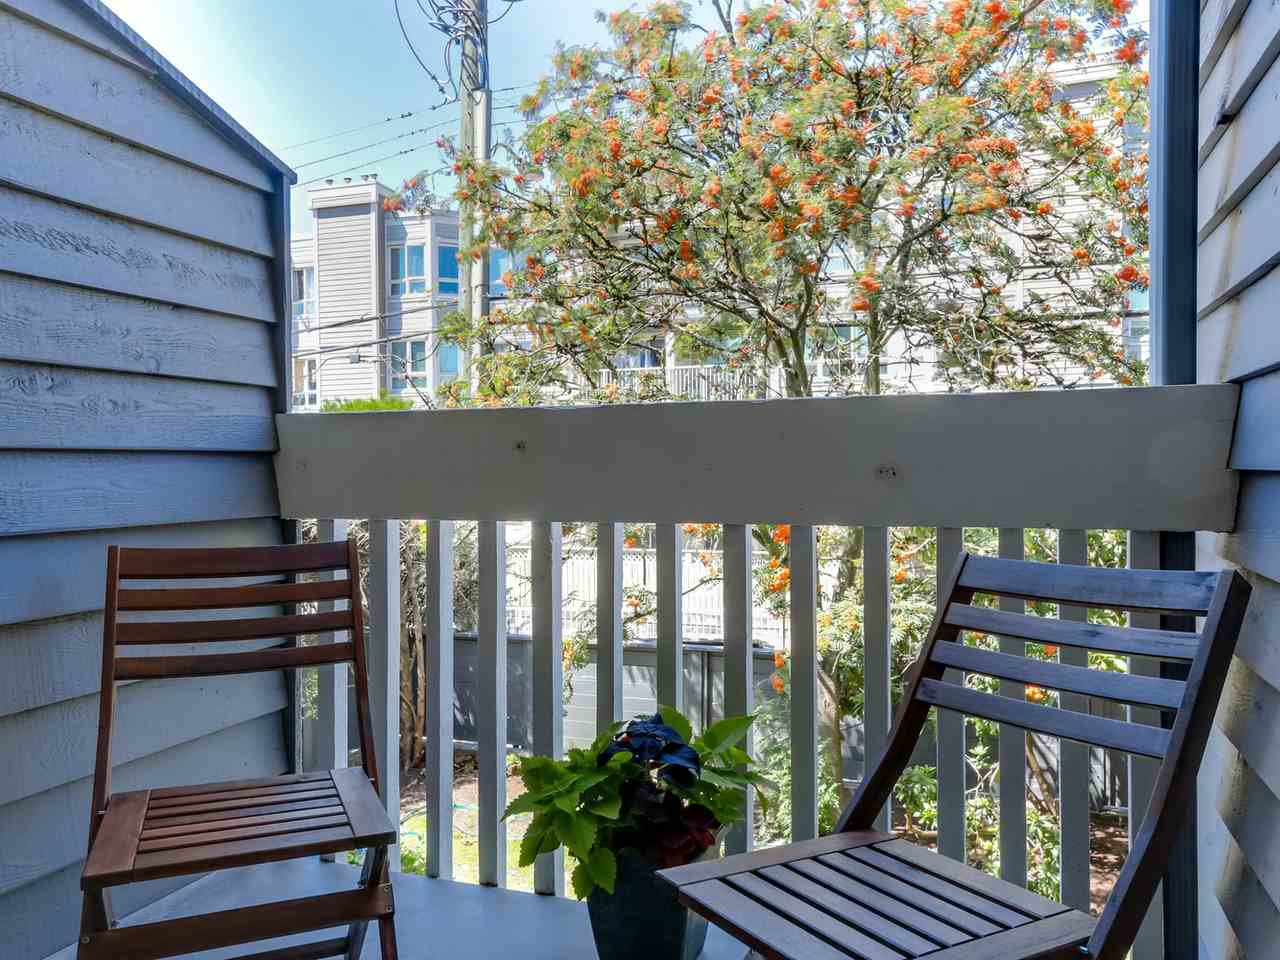 """Photo 18: Photos: 207 1545 E 2ND Avenue in Vancouver: Grandview VE Condo for sale in """"TALISHAN WOODS"""" (Vancouver East)  : MLS®# R2086466"""